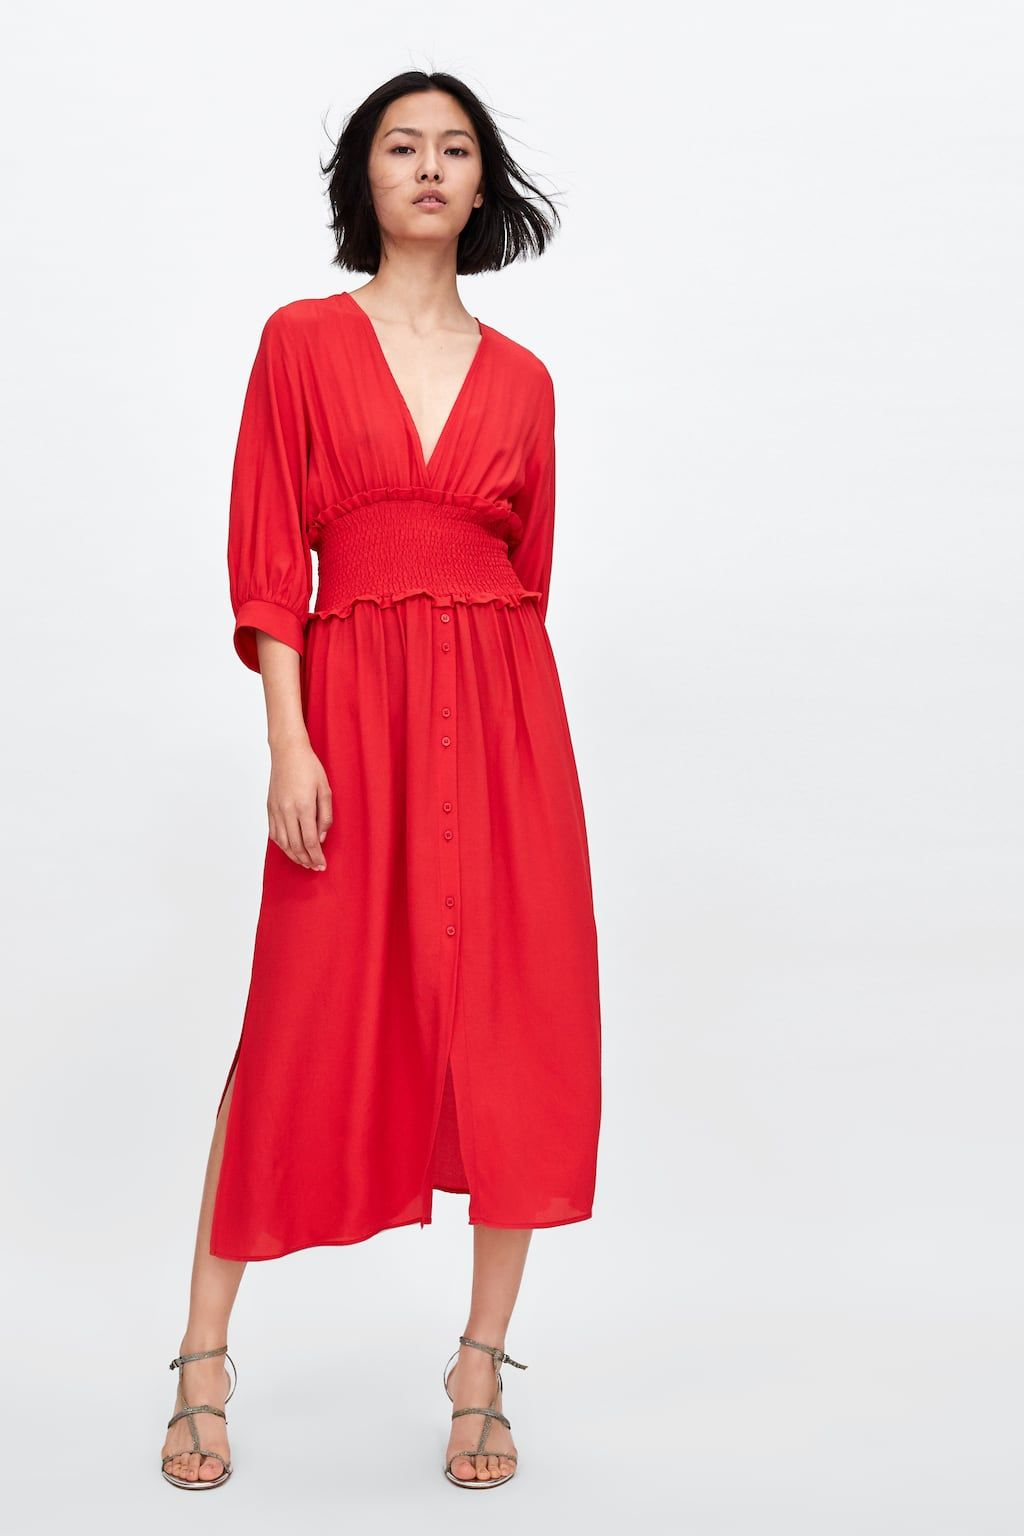 a777c08d0a79 Image 1 of DRESS WITH ELASTIC WAISTBAND from Zara